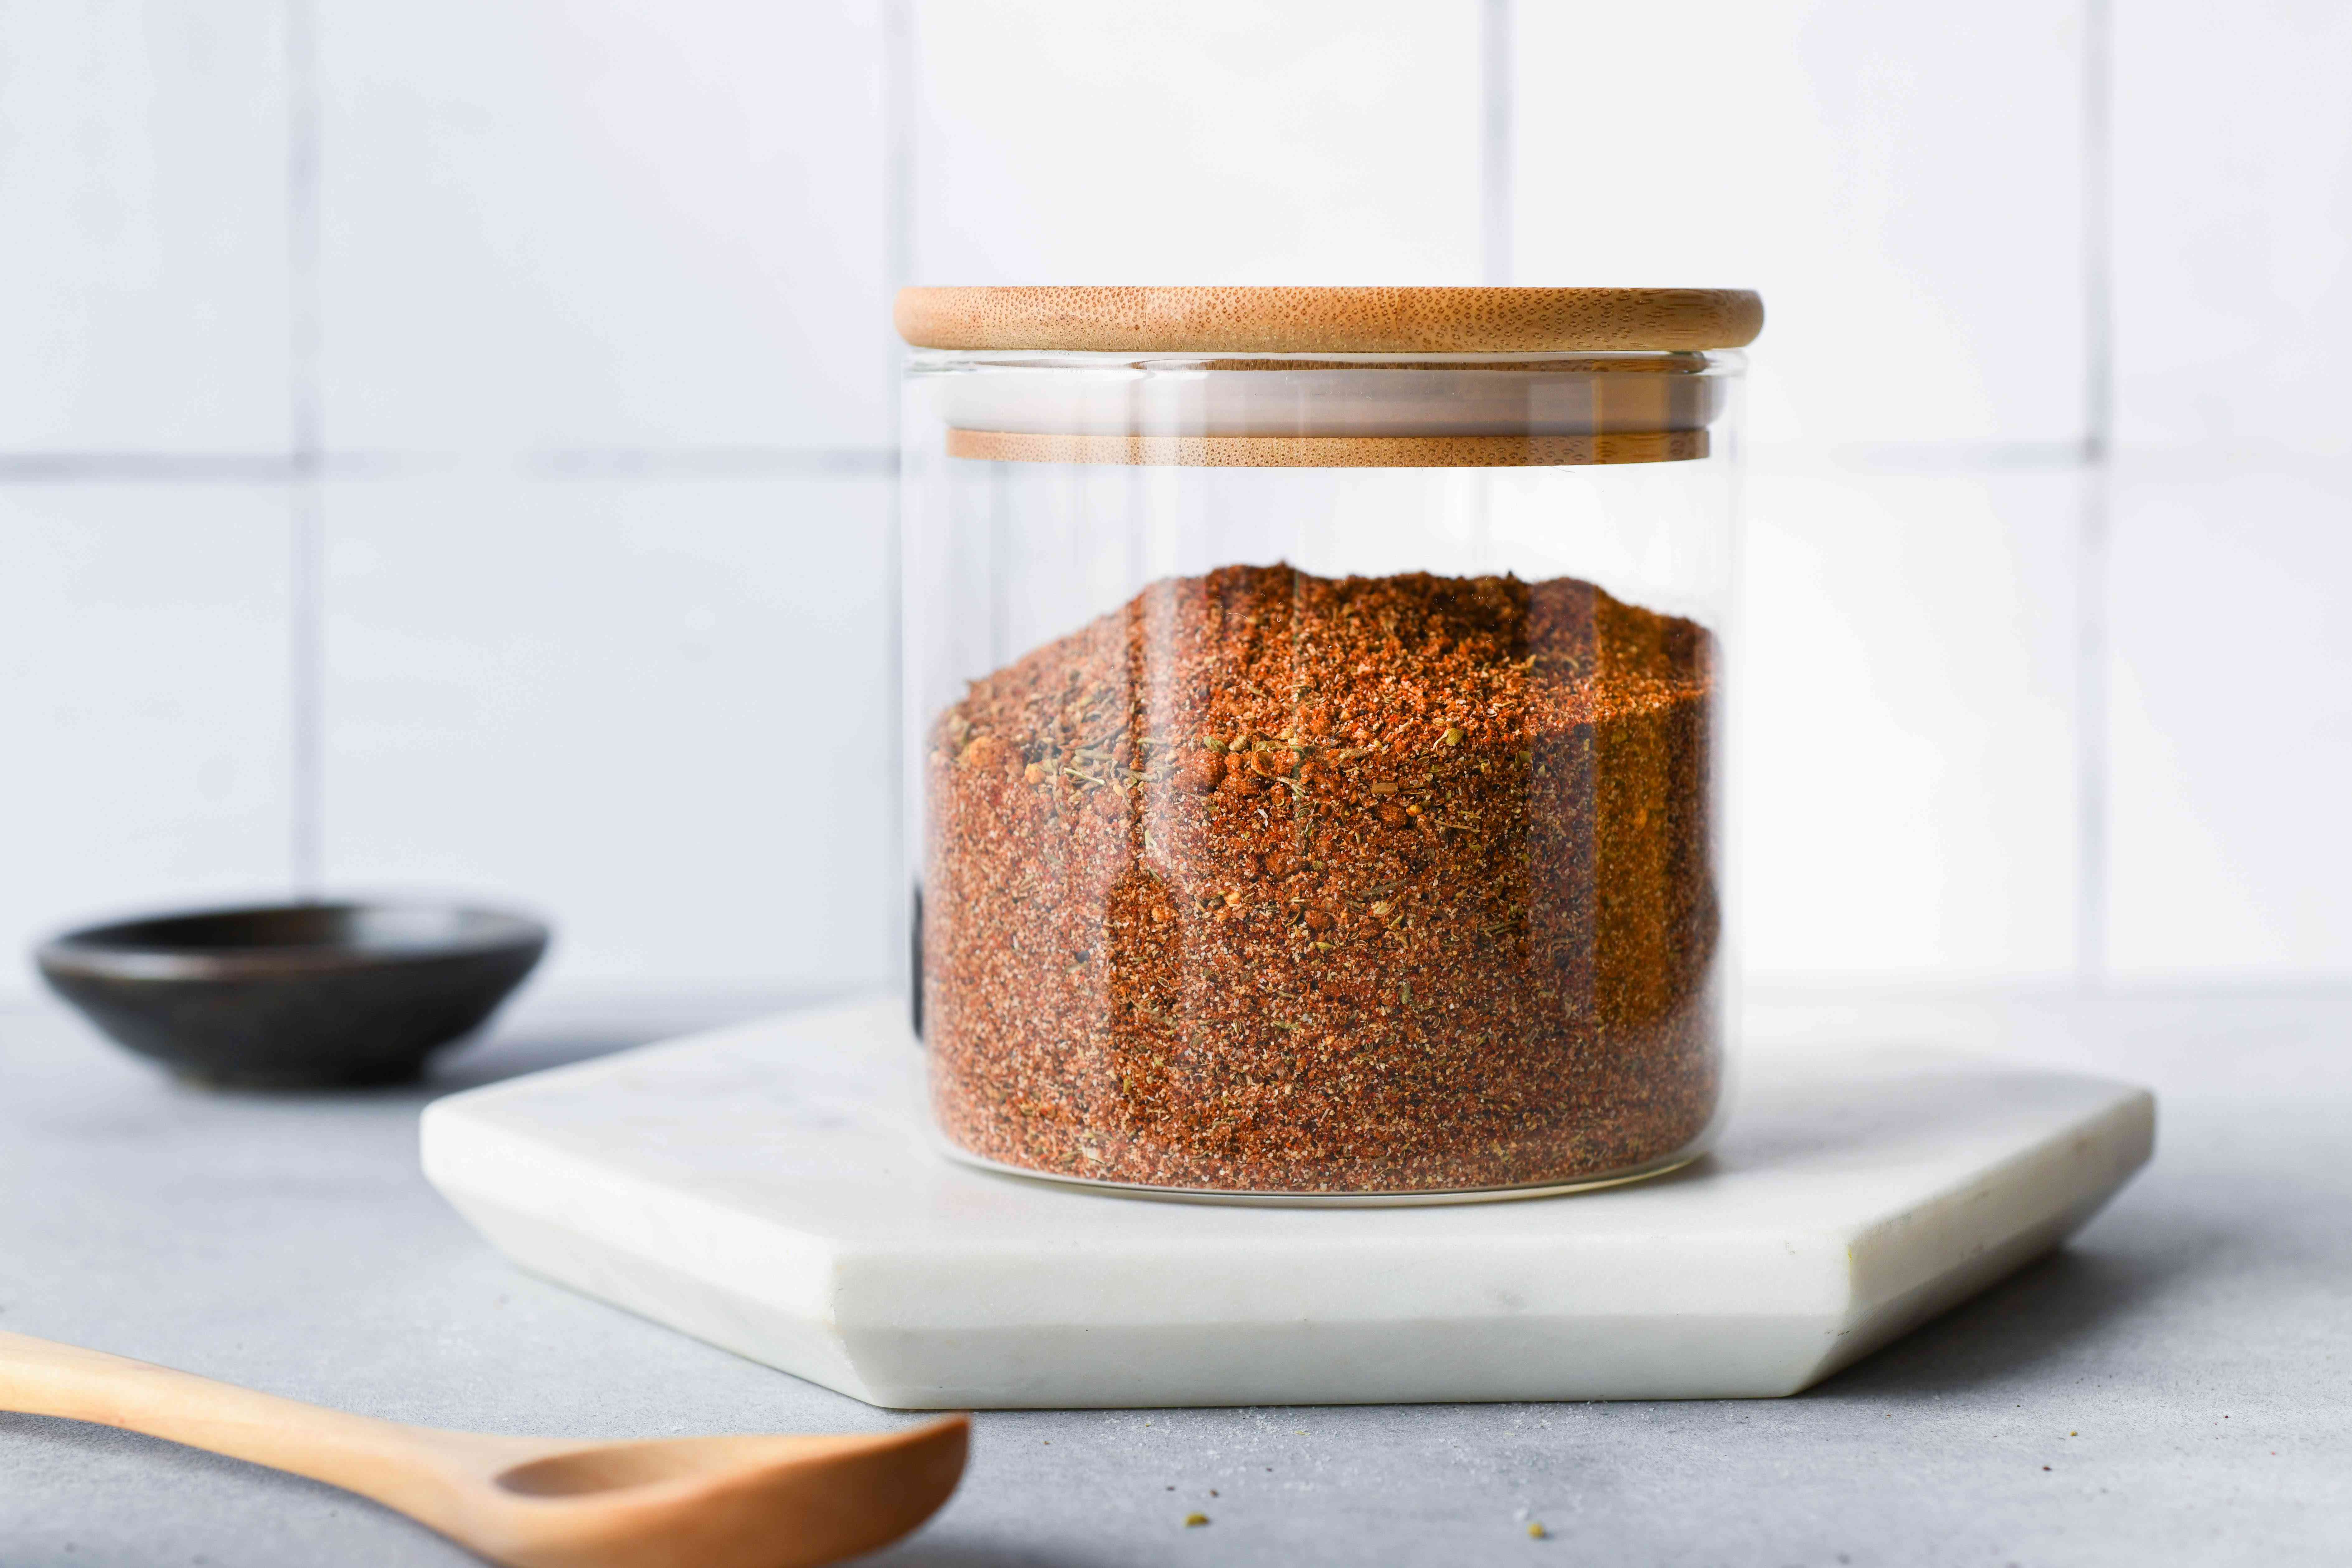 Mouthwatering Memphis Rub in a glass jar